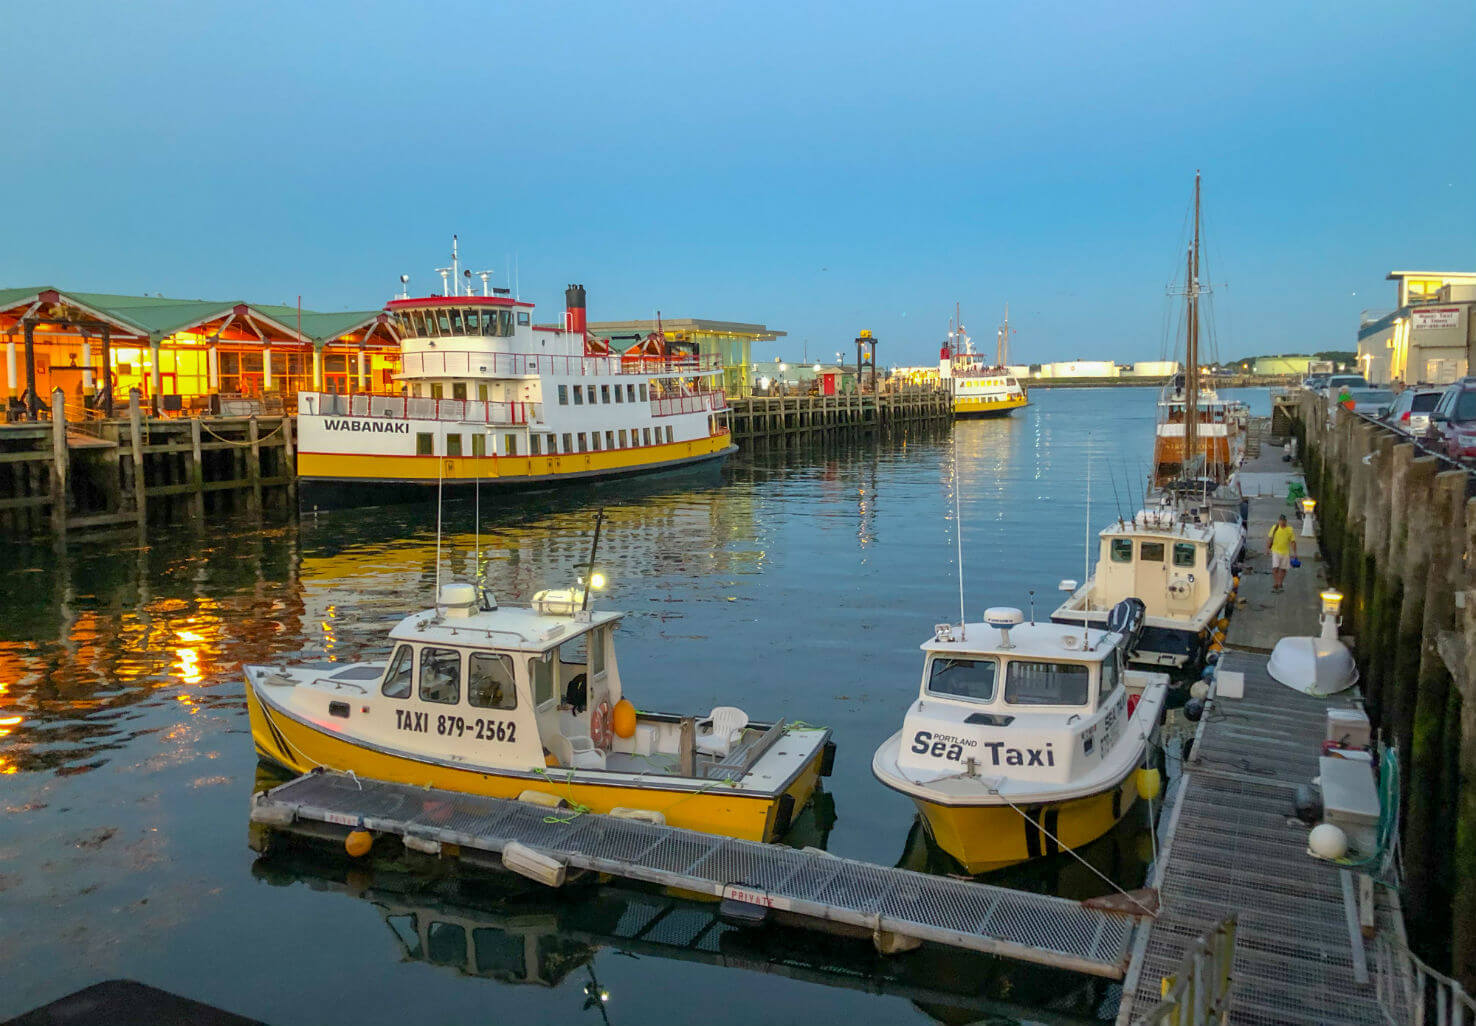 Boats by docks on the waterfront of Portland, Maine